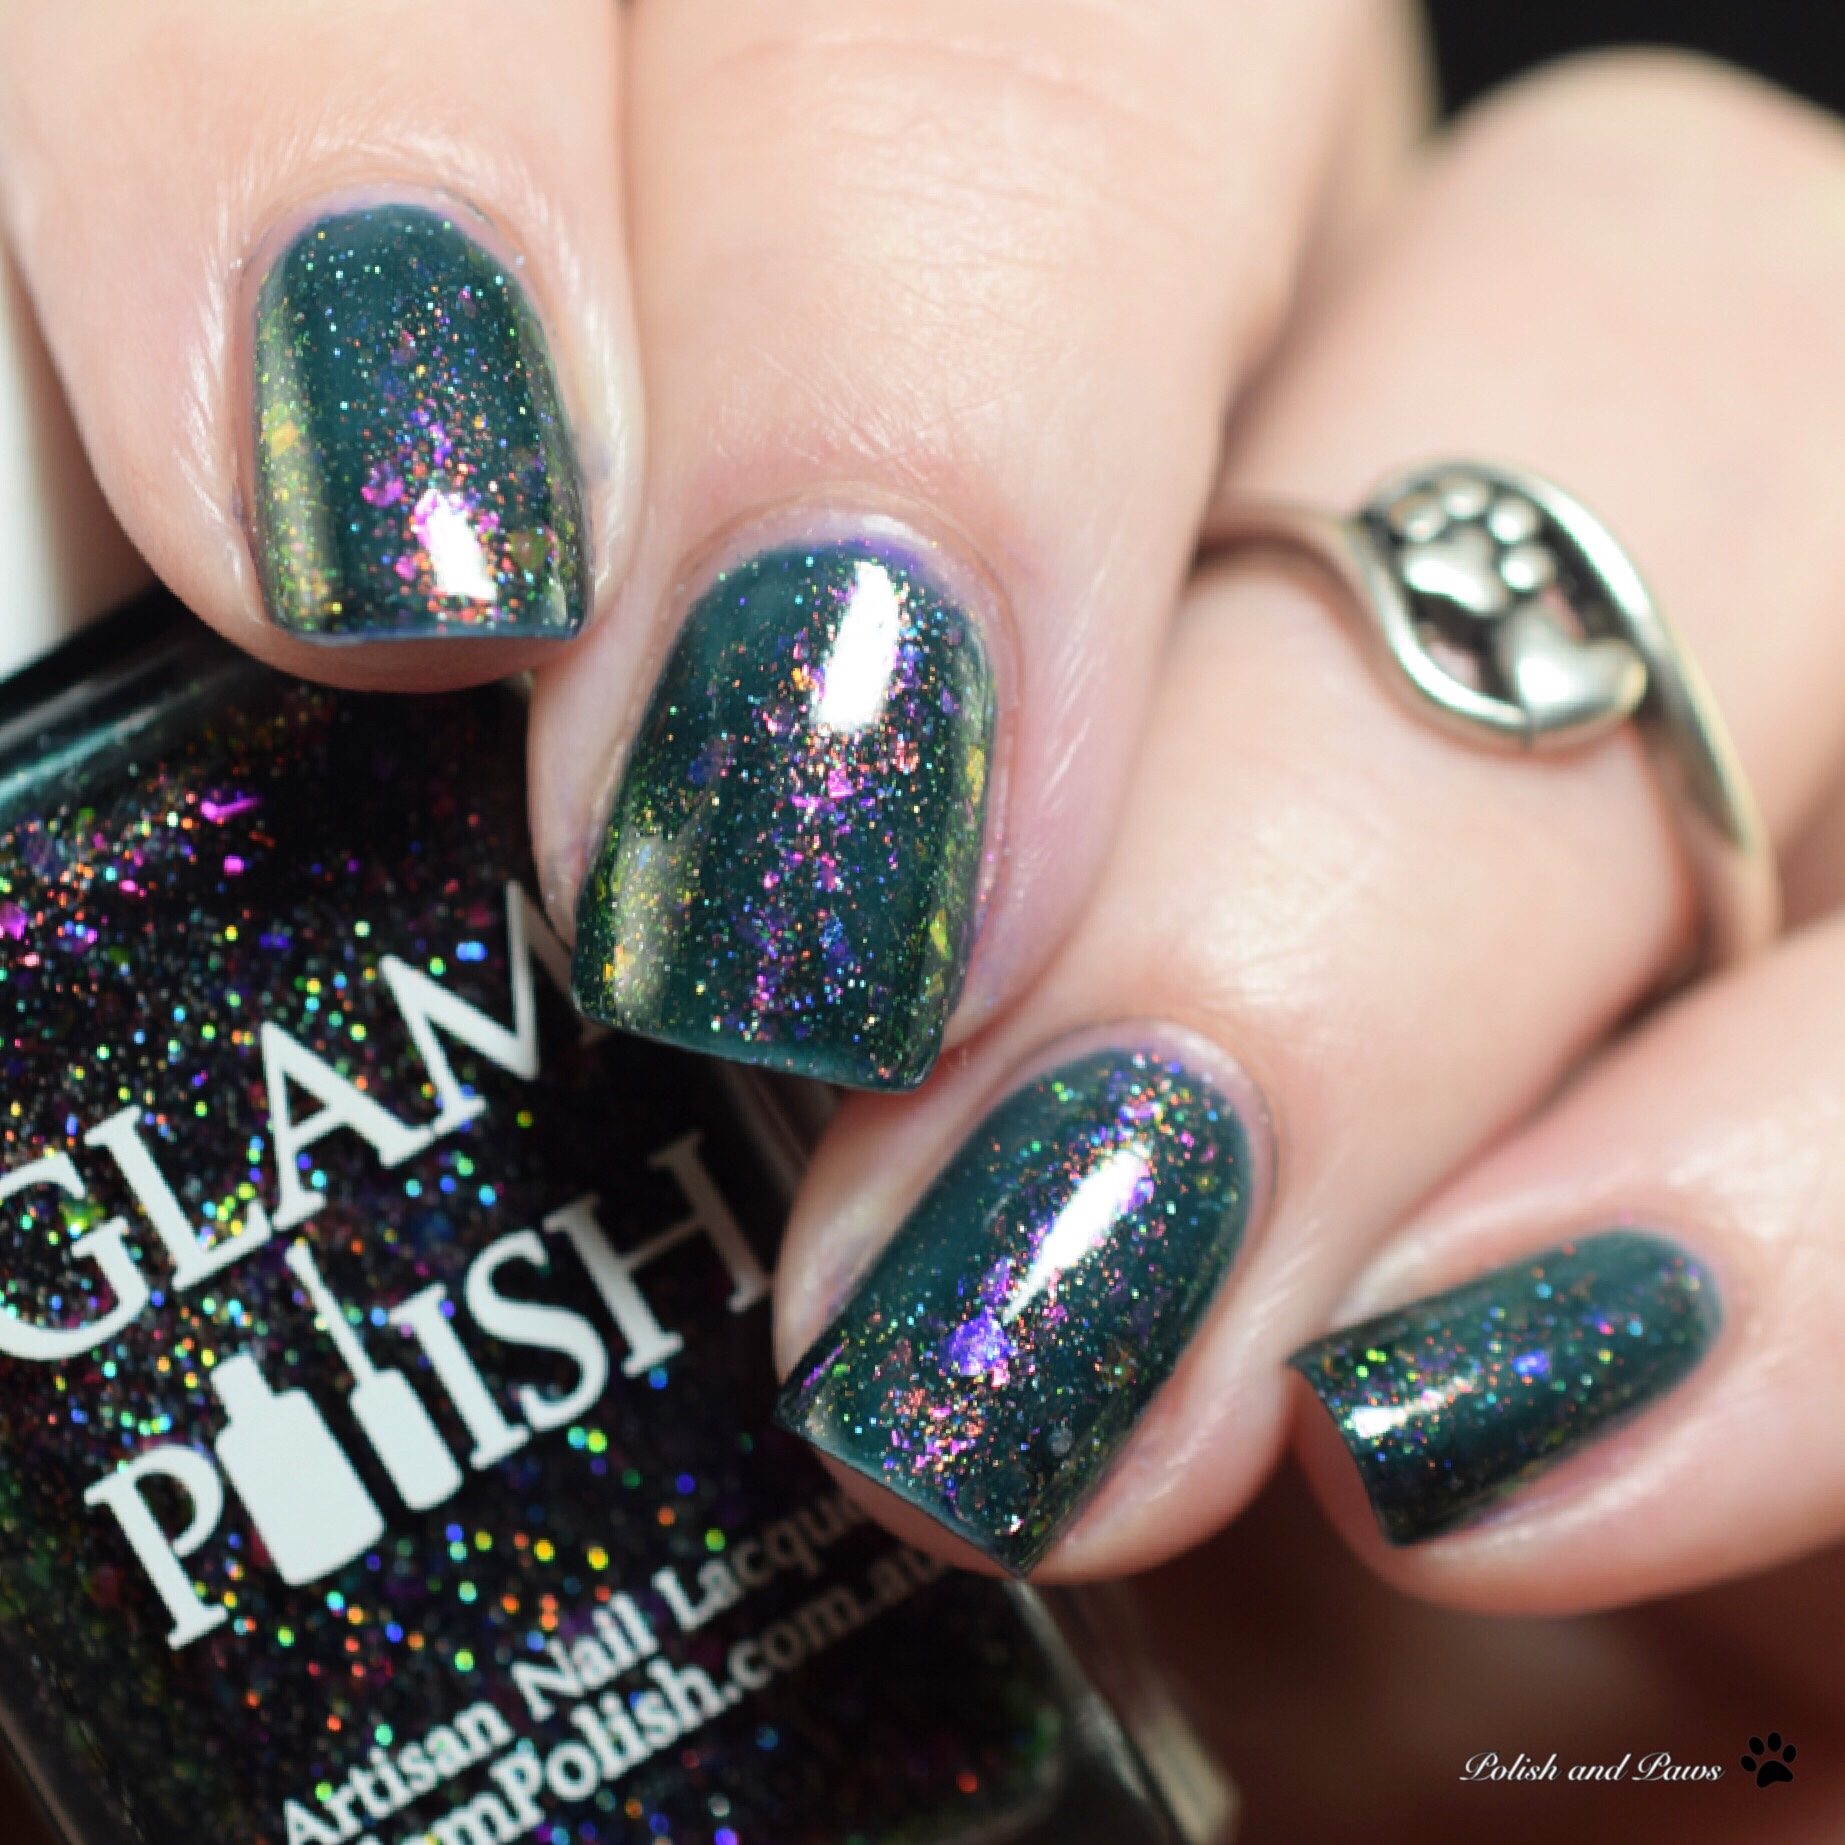 Glam Polish I'll Kill You All!